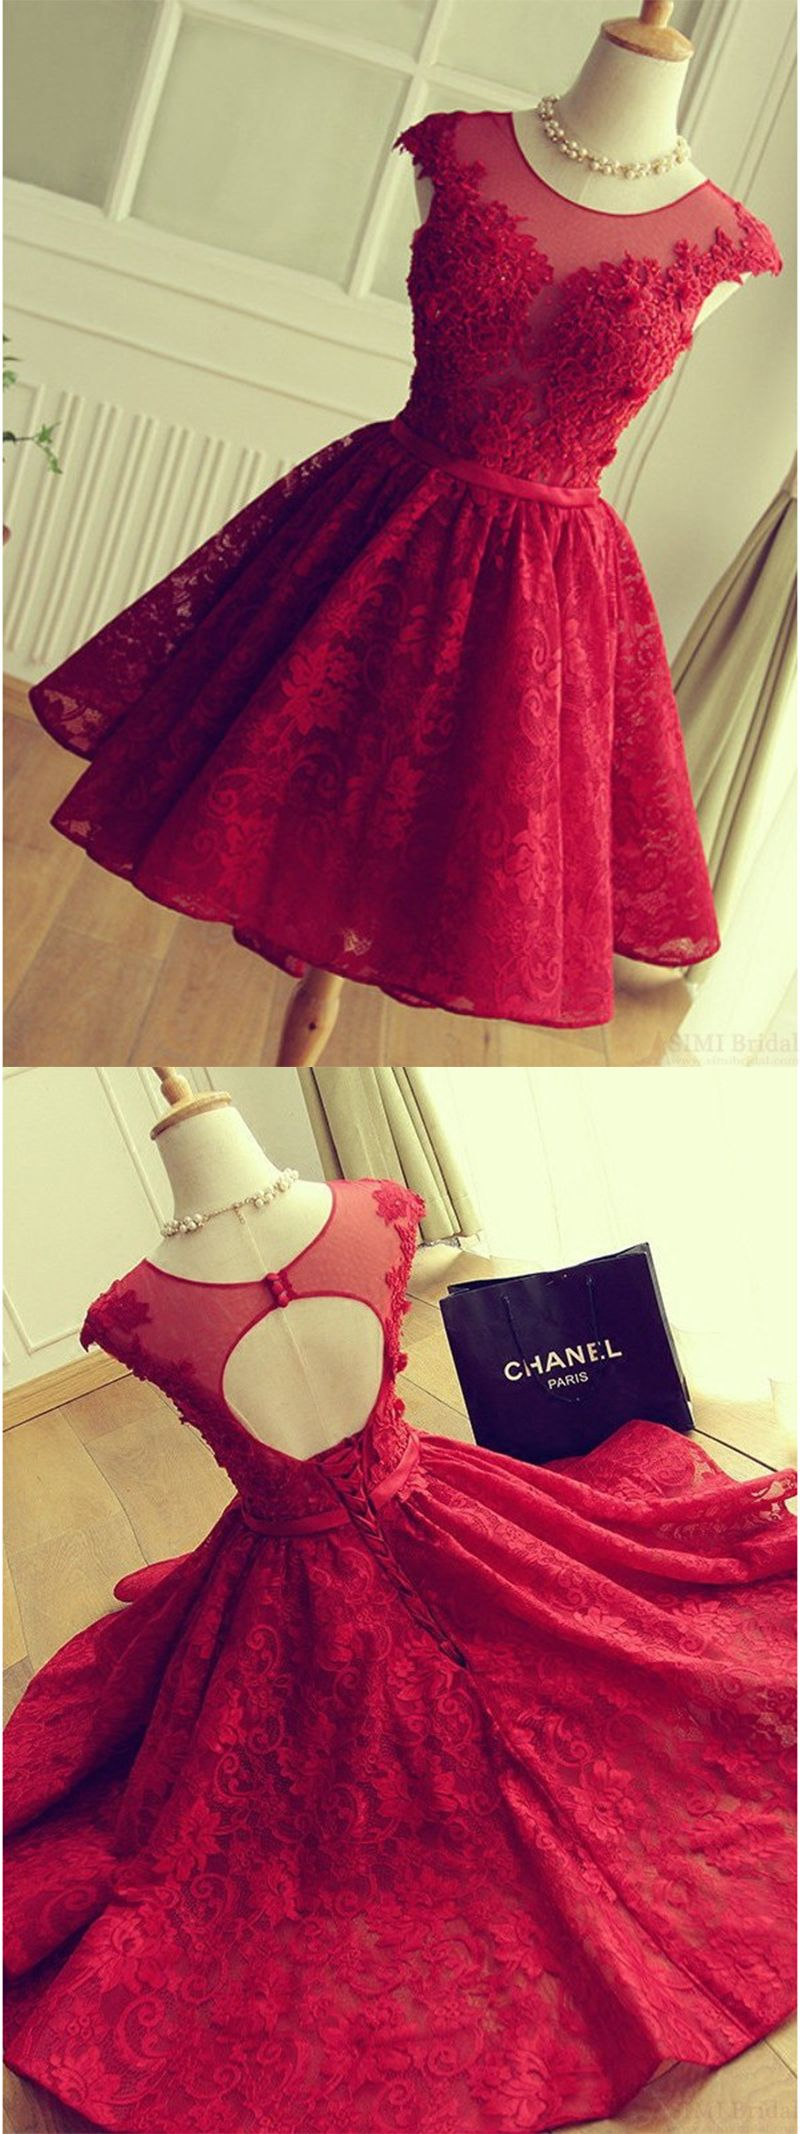 Cute red kneelength red short lace prom dress homecoming dress